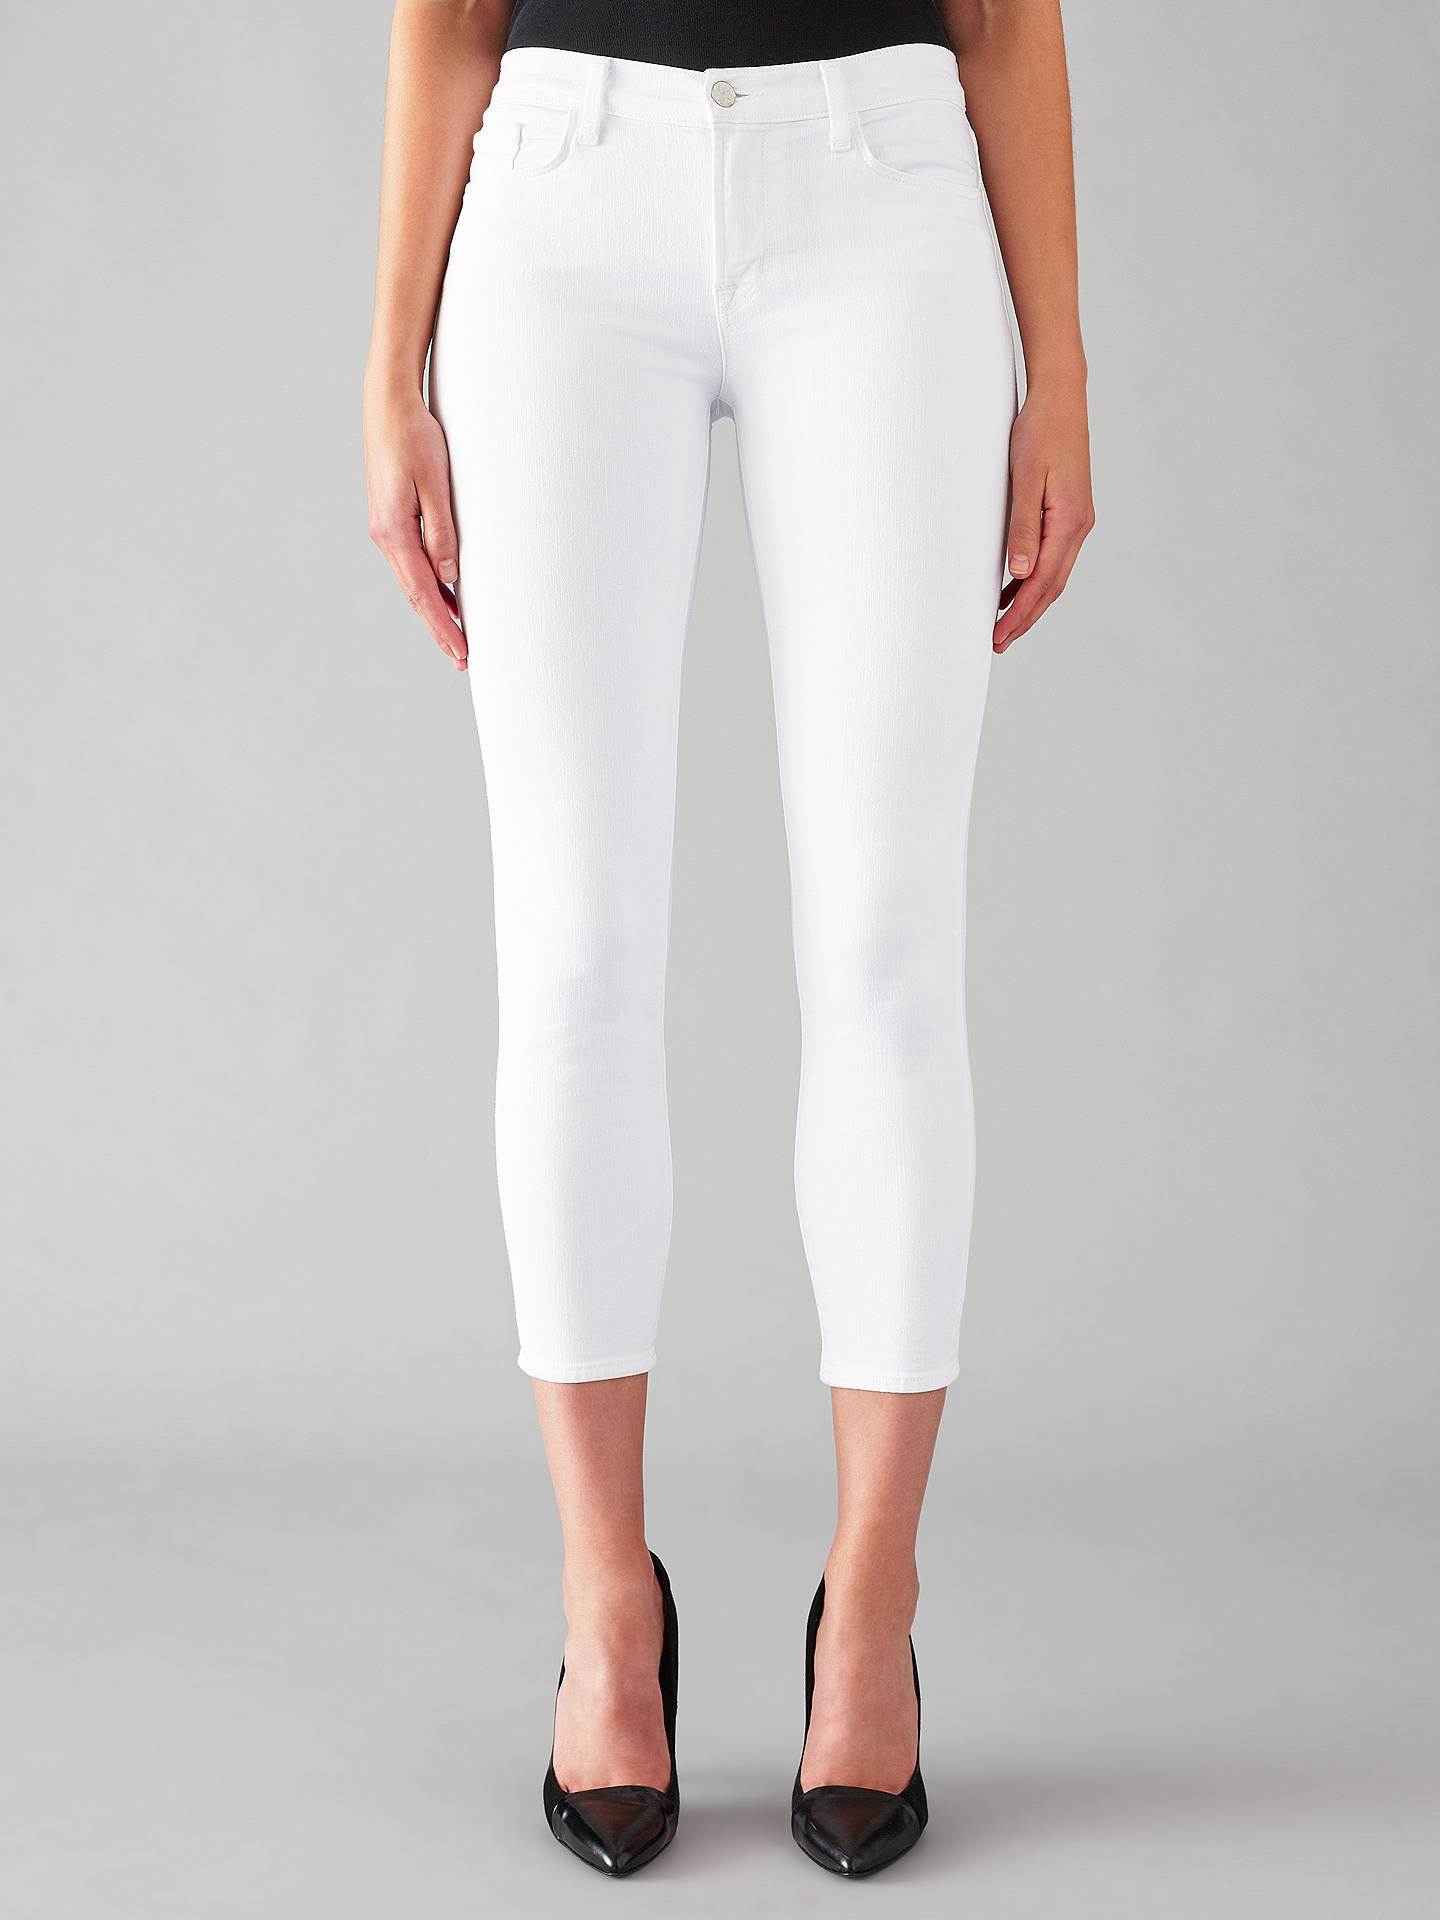 8d799609478d2 Buy J Brand 835 Mid Rise Cropped Skinny Jeans, Blanc, 24 Online at  johnlewis ...